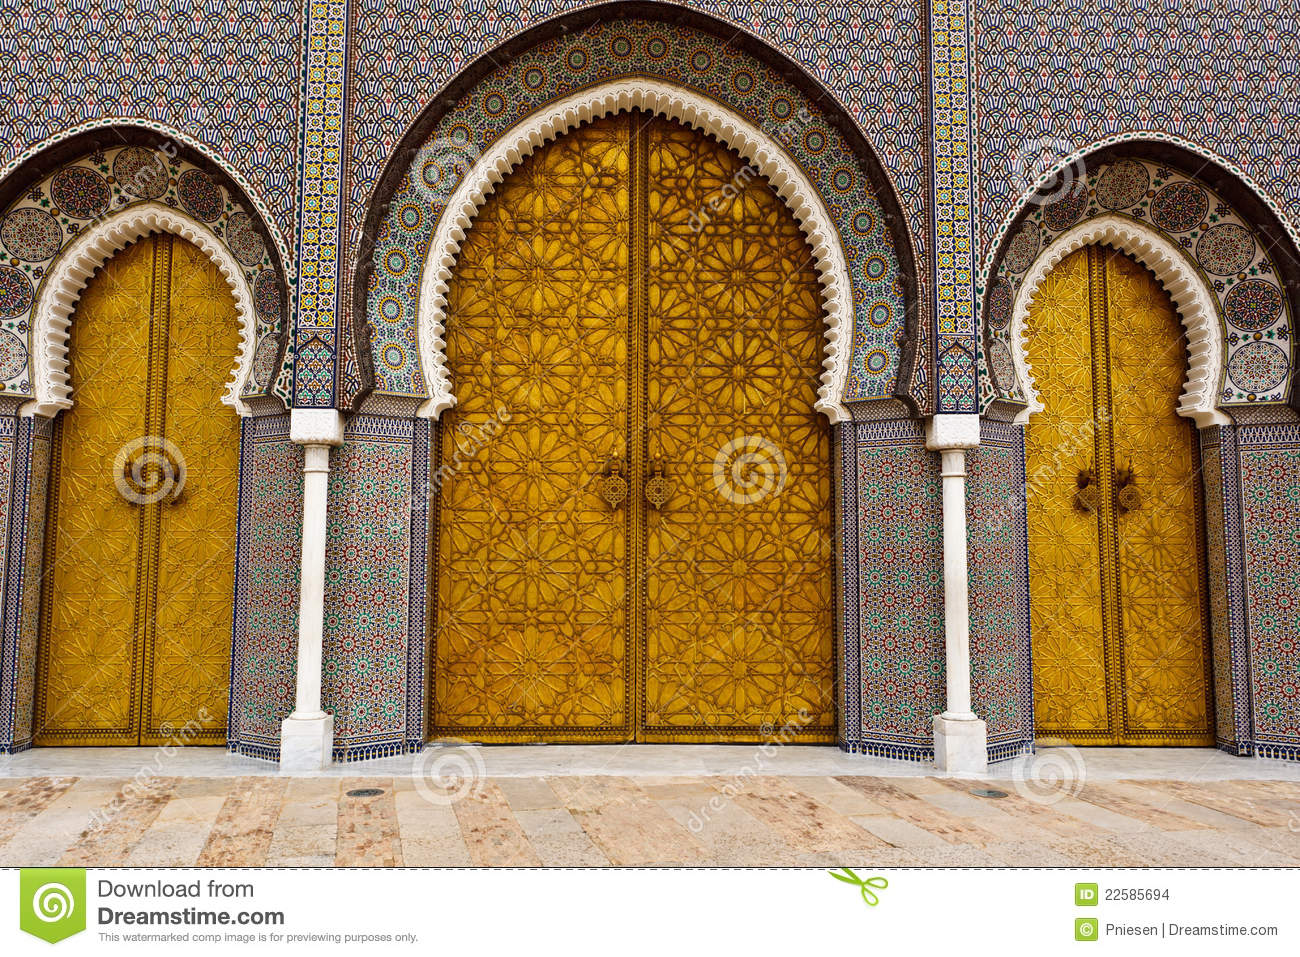 Ornate Doors to Royal Palace in Fez & Ornate Doors To Royal Palace In Fez Stock Photo - Image of royal ...